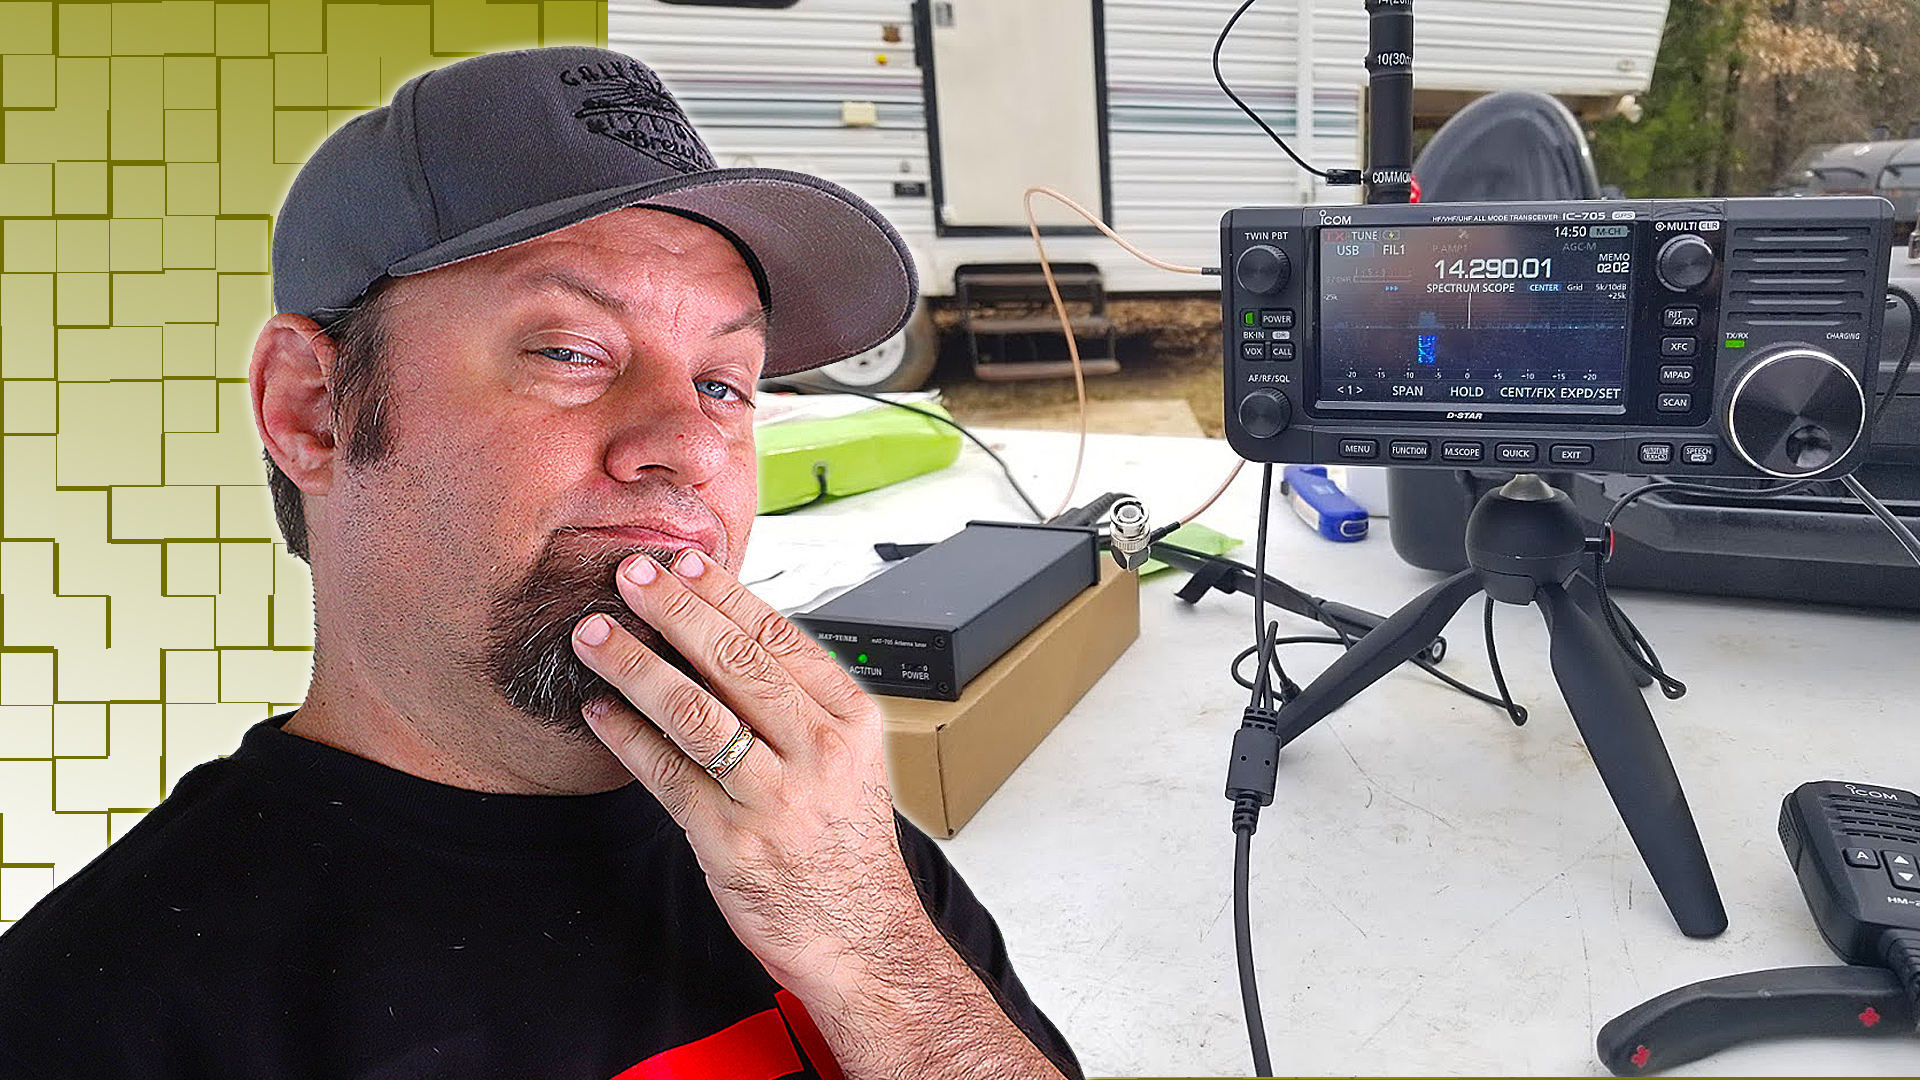 Episode 534: Icom IC-705 with the Comet HFJ 350M HF Antenna | IC-705 Accessories